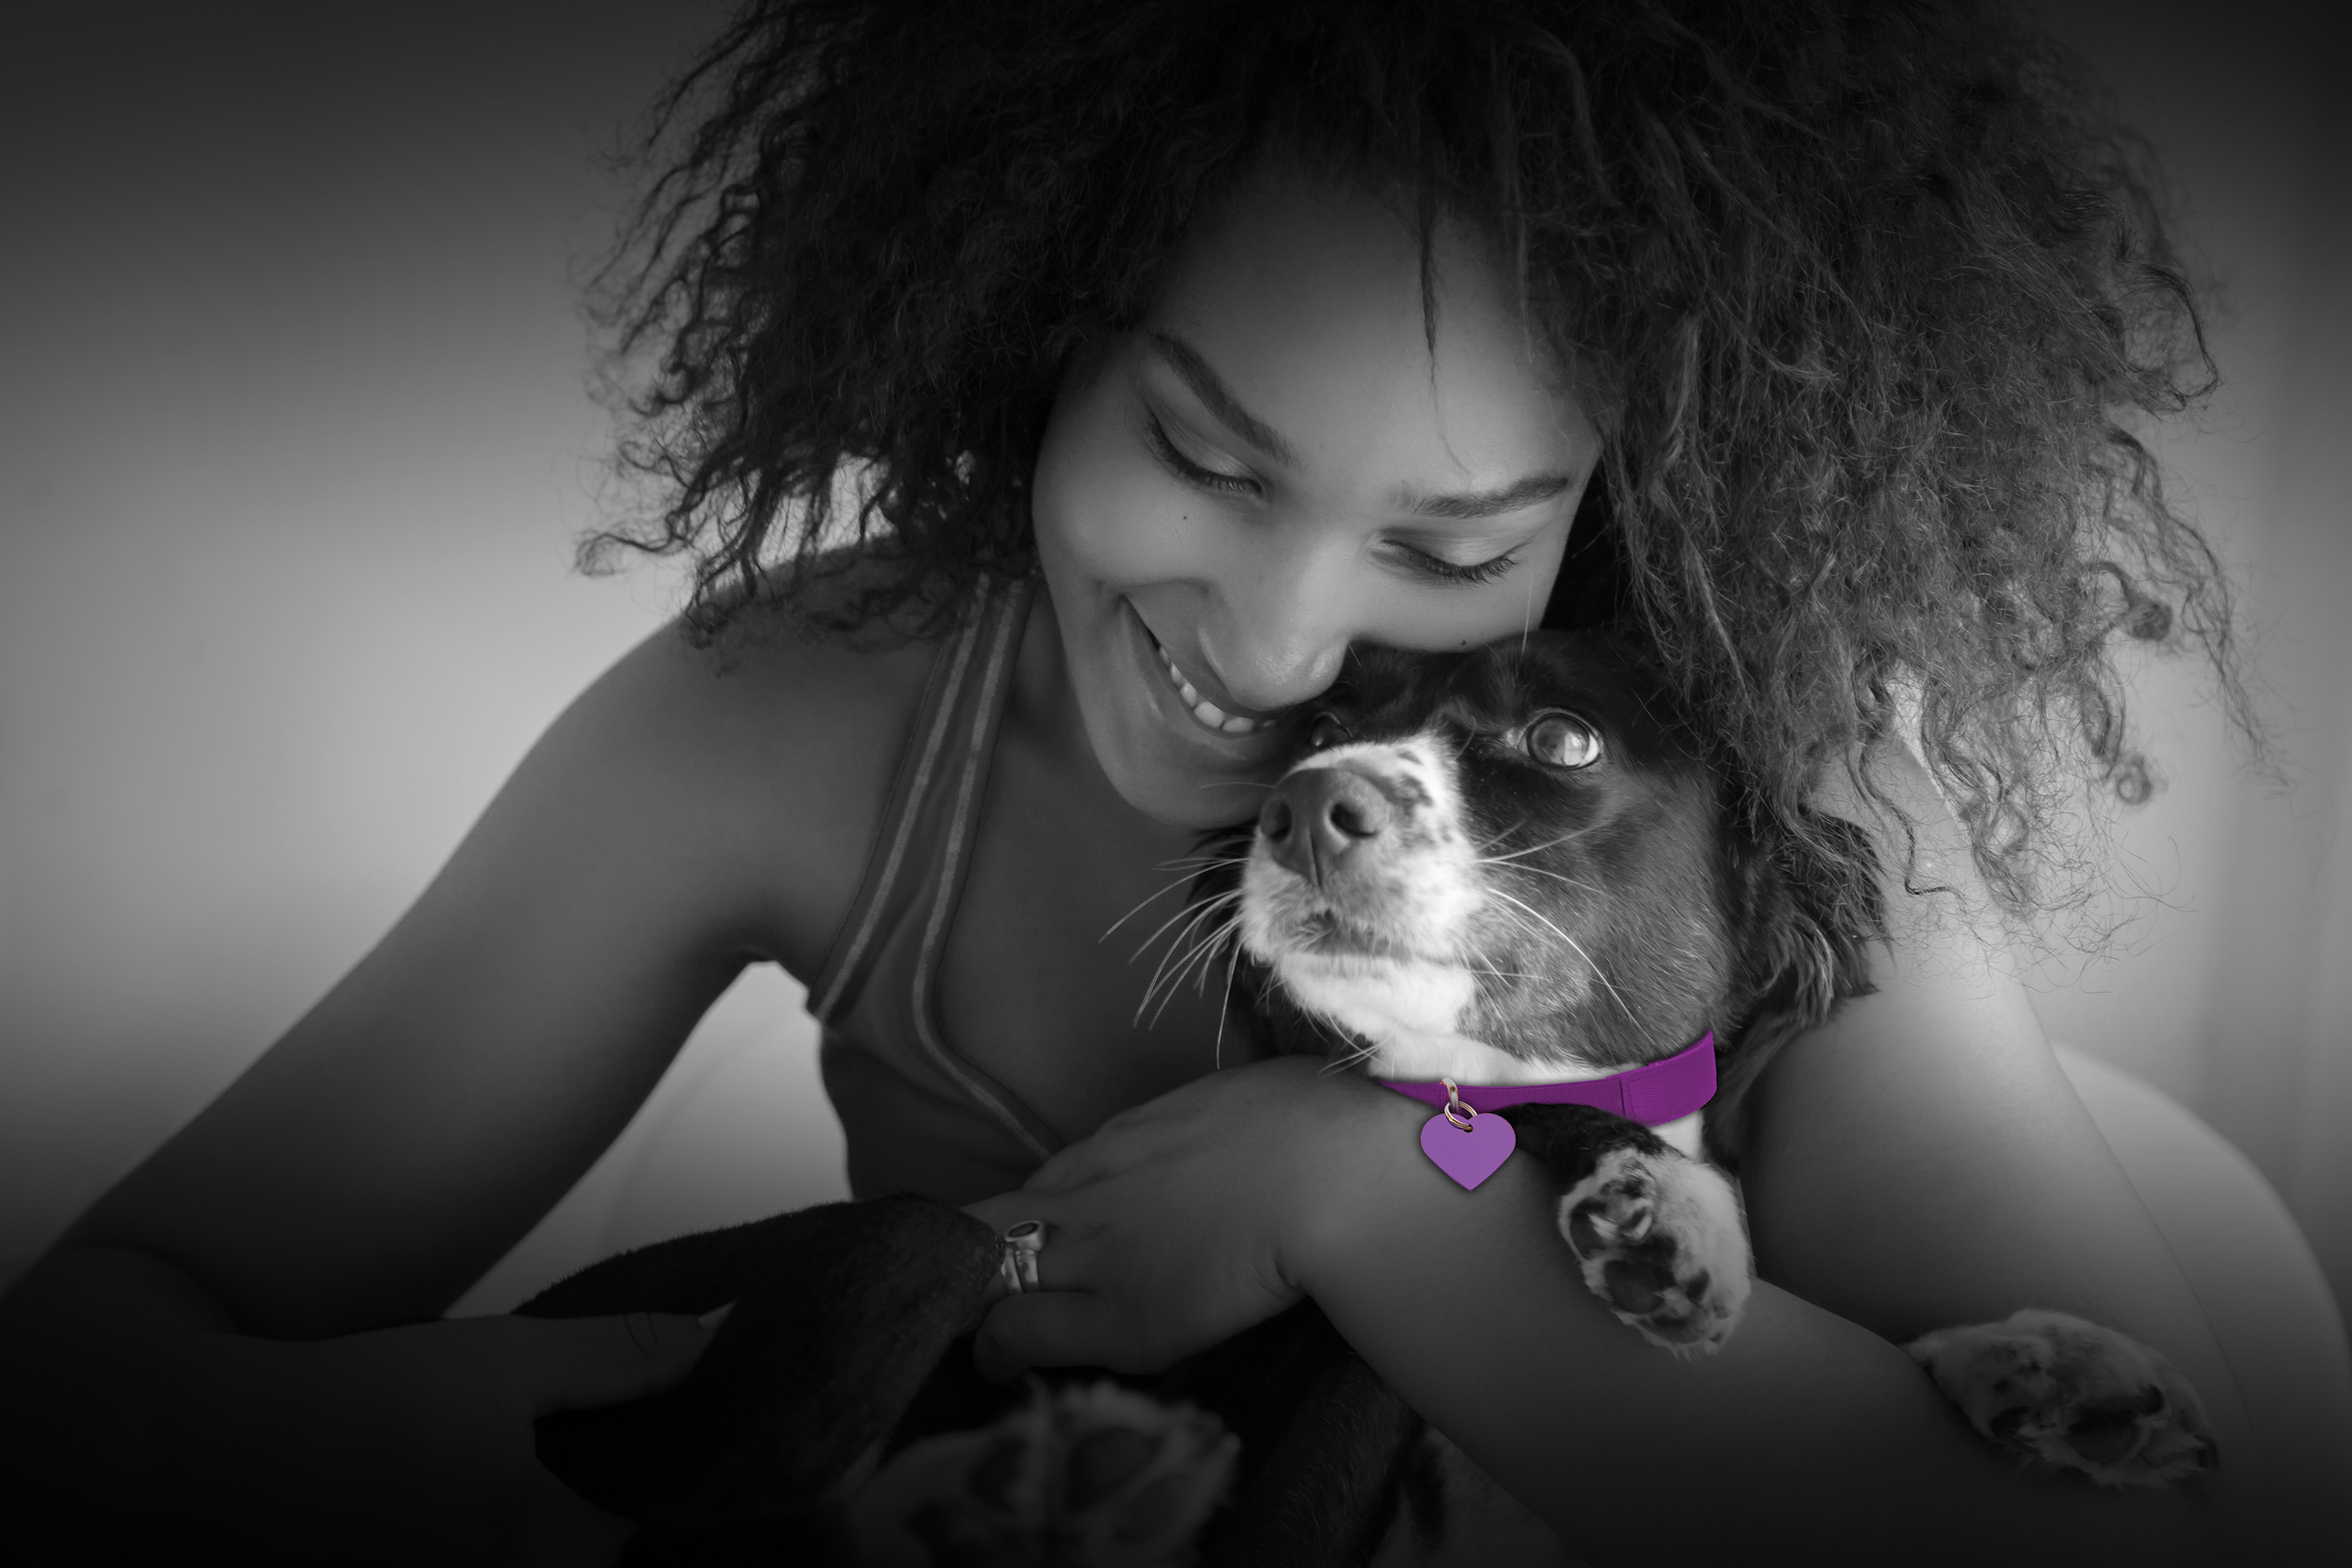 Since the Purple Leash Project was introduced last year, 15 Purina + RedRover Purple Leash Project grants have been awarded to domestic violence shelters across the U.S. totaling more than $230,000 in support to create pet-friendly housing for survivors with pets.